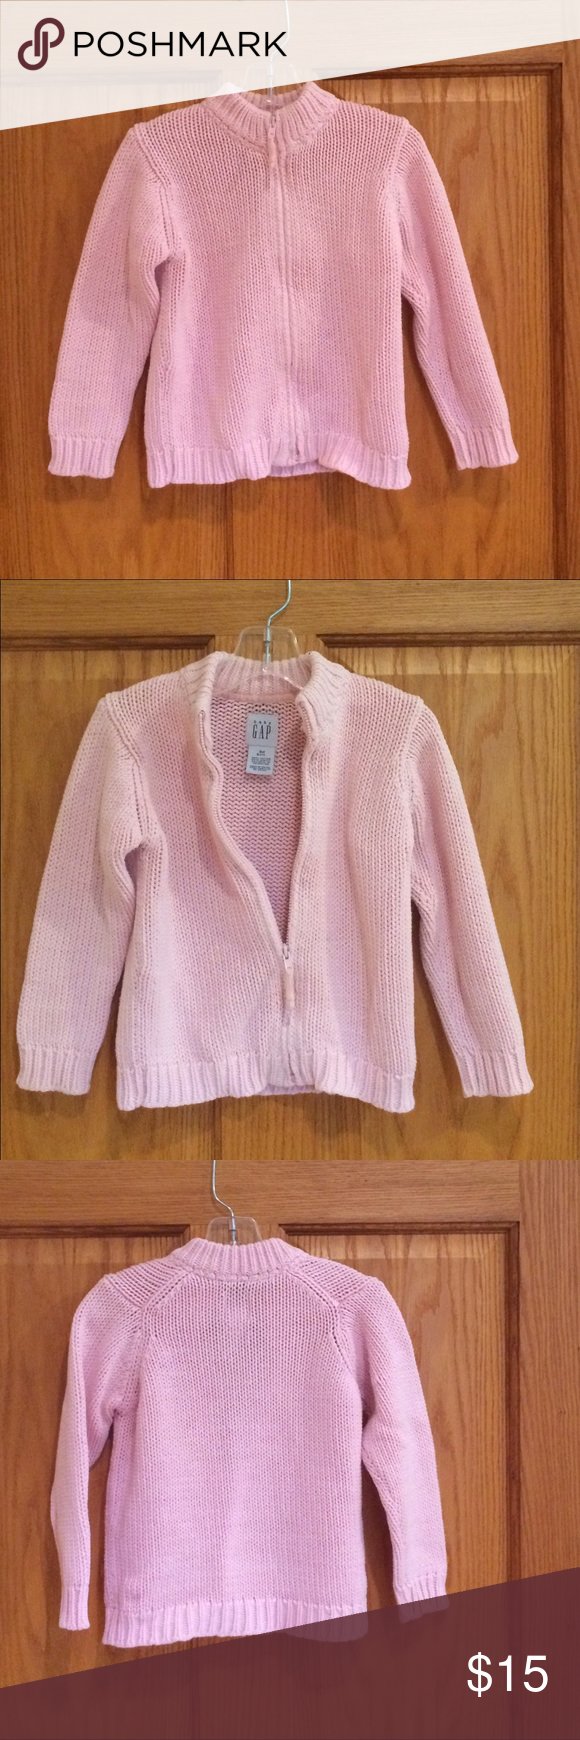 Baby Gap Zip Up Sweater | Baby gap, Cotton and Customer support